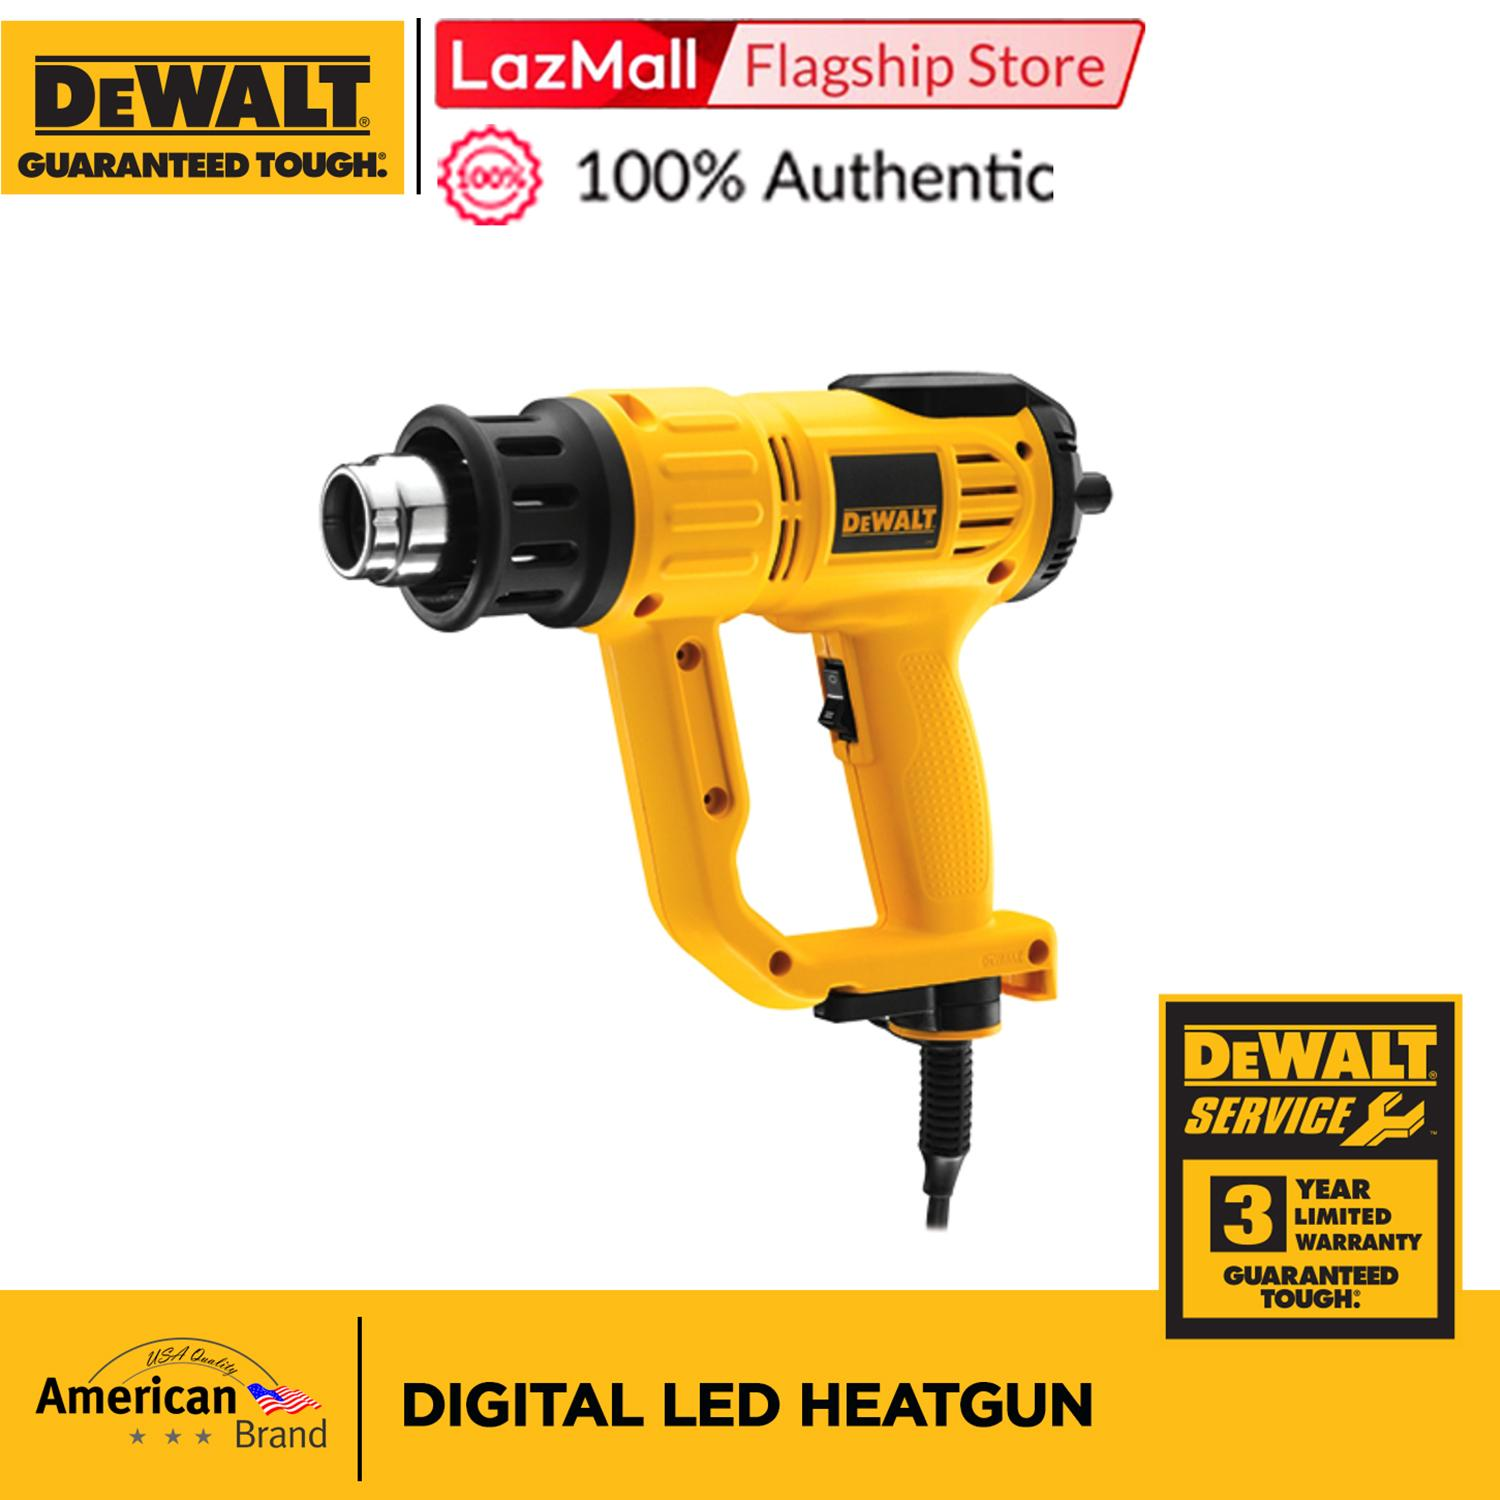 Dewalt - D26414 : 2000W Digital LED HEATGUN